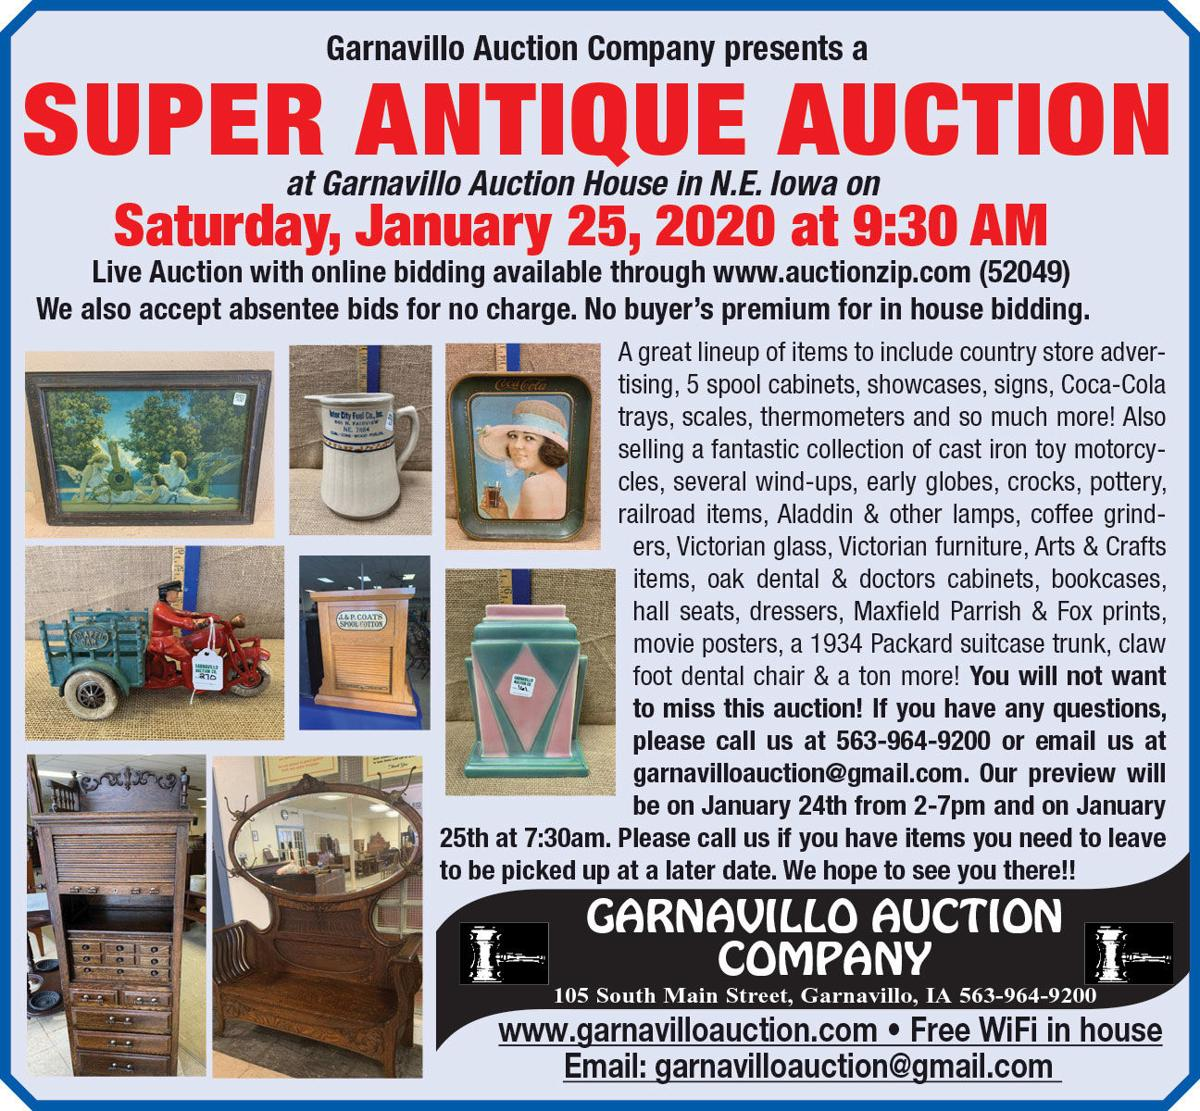 Super Antique Auction, country store advertising, crocks, furniture, toys